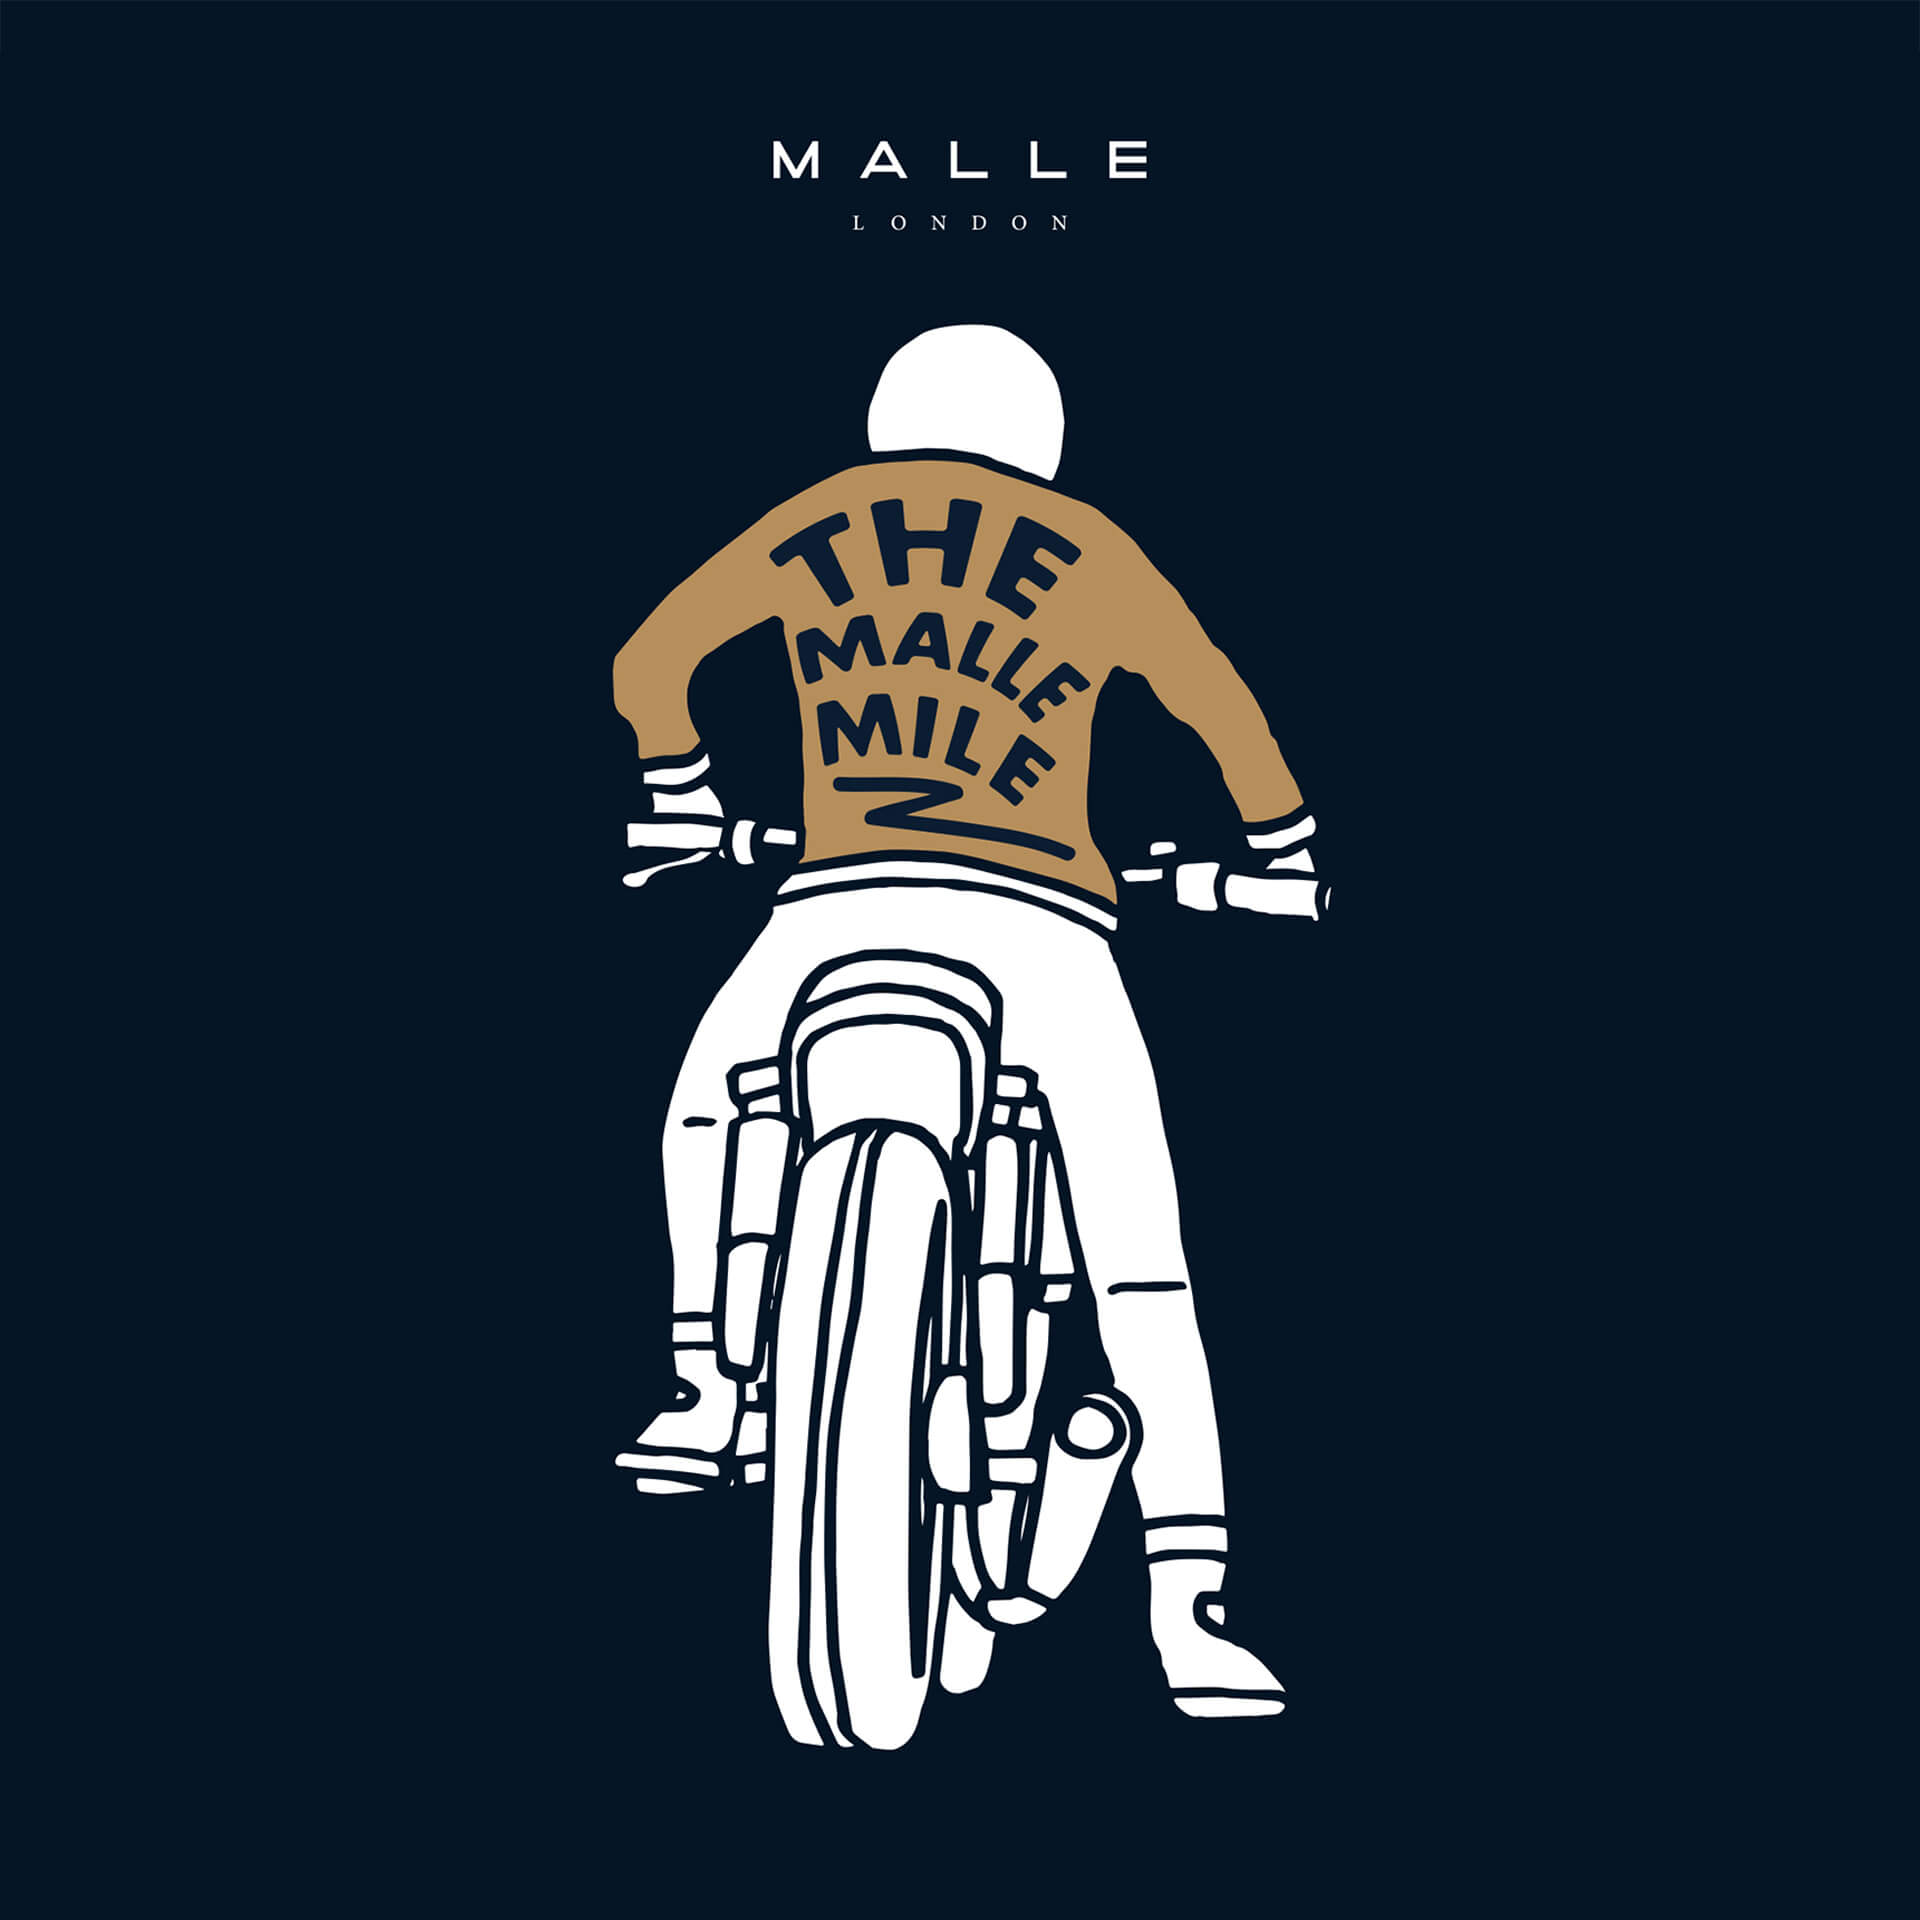 2016 Malle Mile, London, Bikes, Film, Event, Motion, WEARESHUFFLE